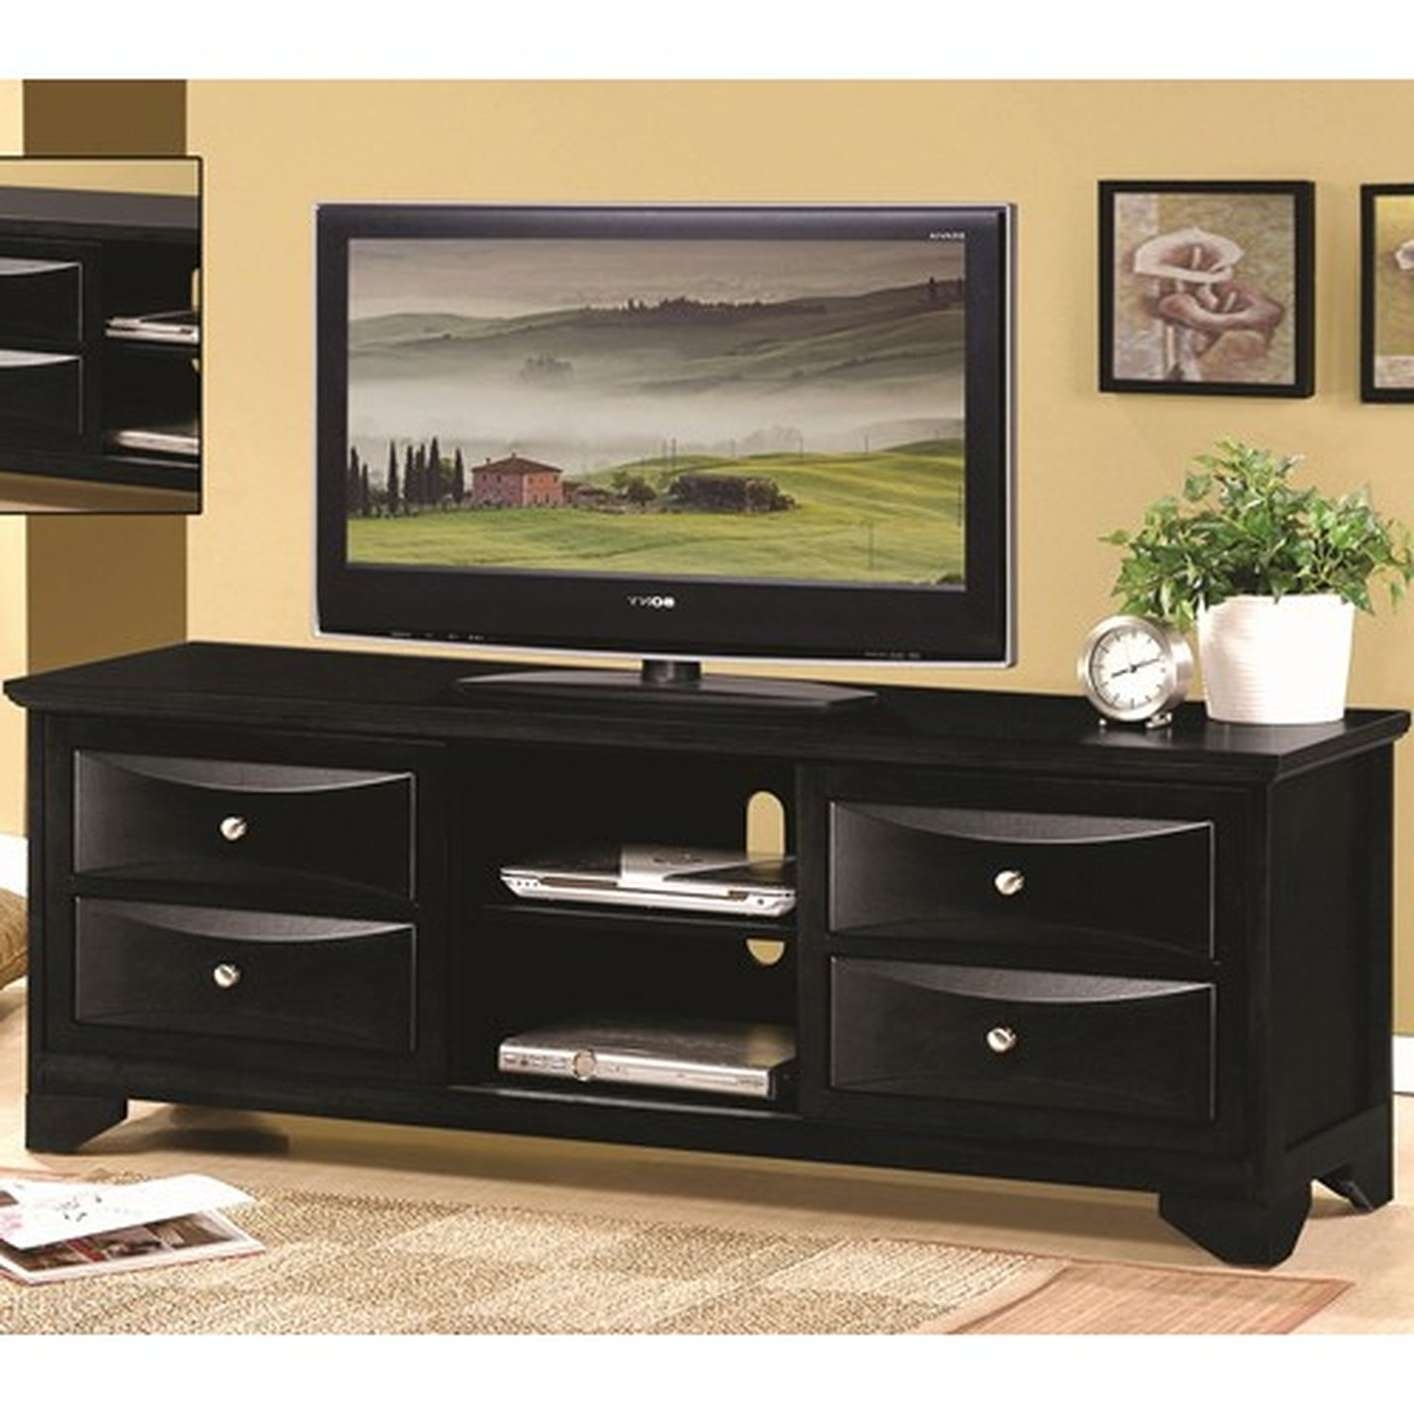 Black Wood Tv Stand – Steal A Sofa Furniture Outlet Los Angeles Ca With Regard To Black Tv Cabinets With Drawers (View 8 of 20)